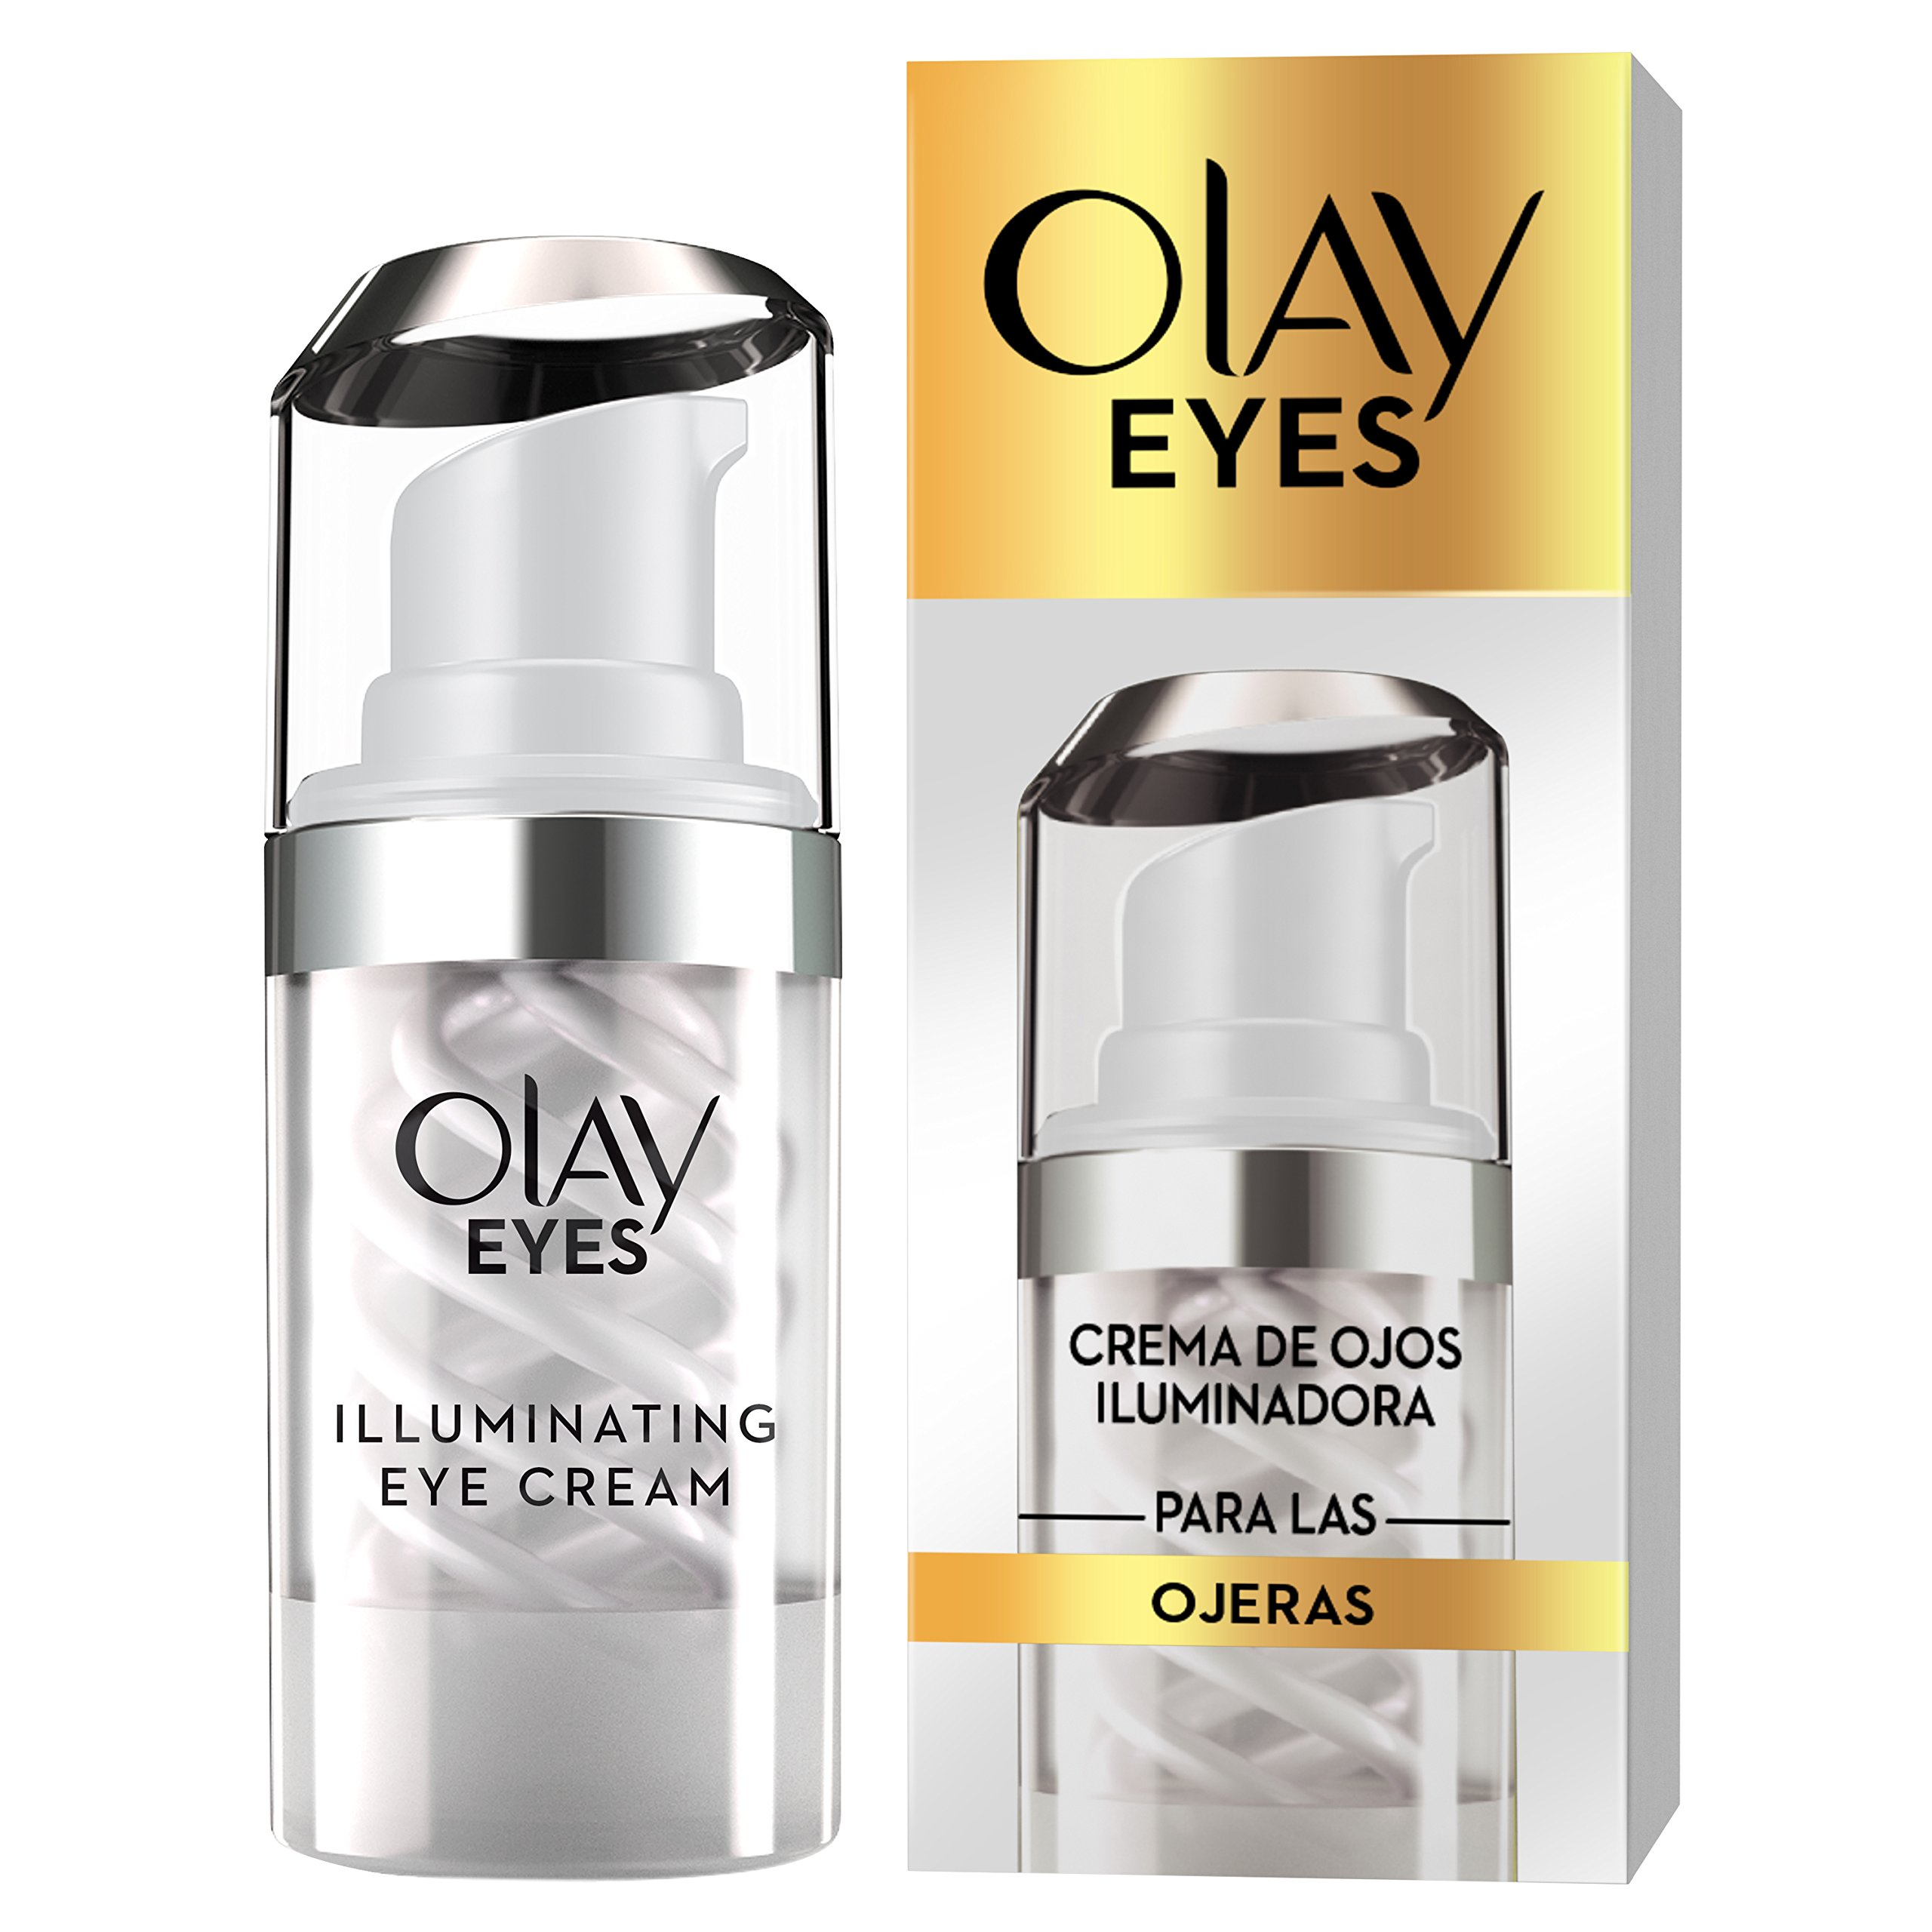 Olay Eyes Crema Ojos Iluminadora Anti Ojeras - 15 ml product image